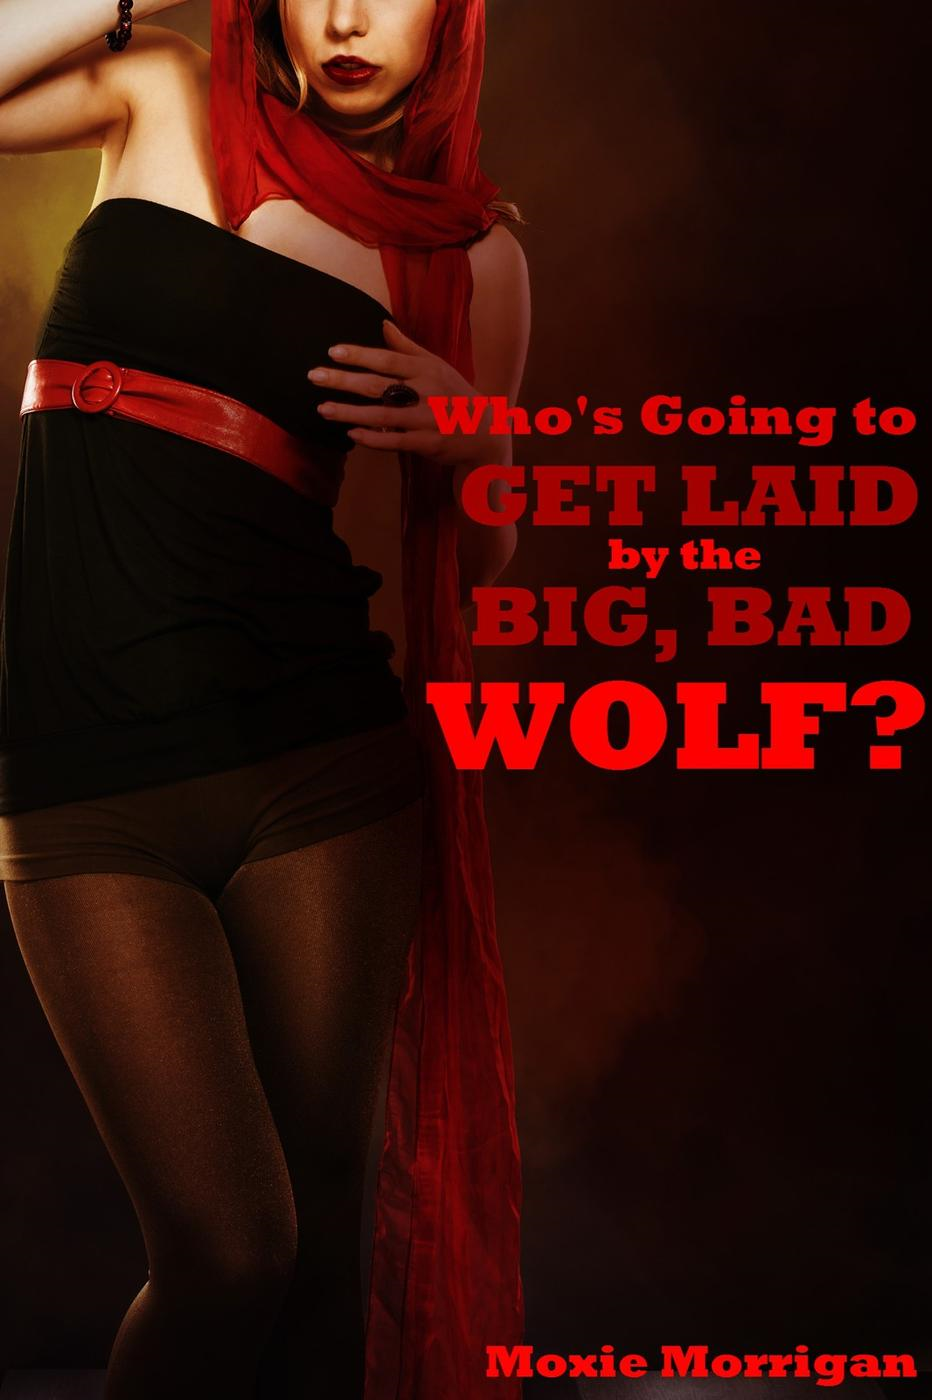 Who's Going to Get Laid by the Big, Bad Wolf?